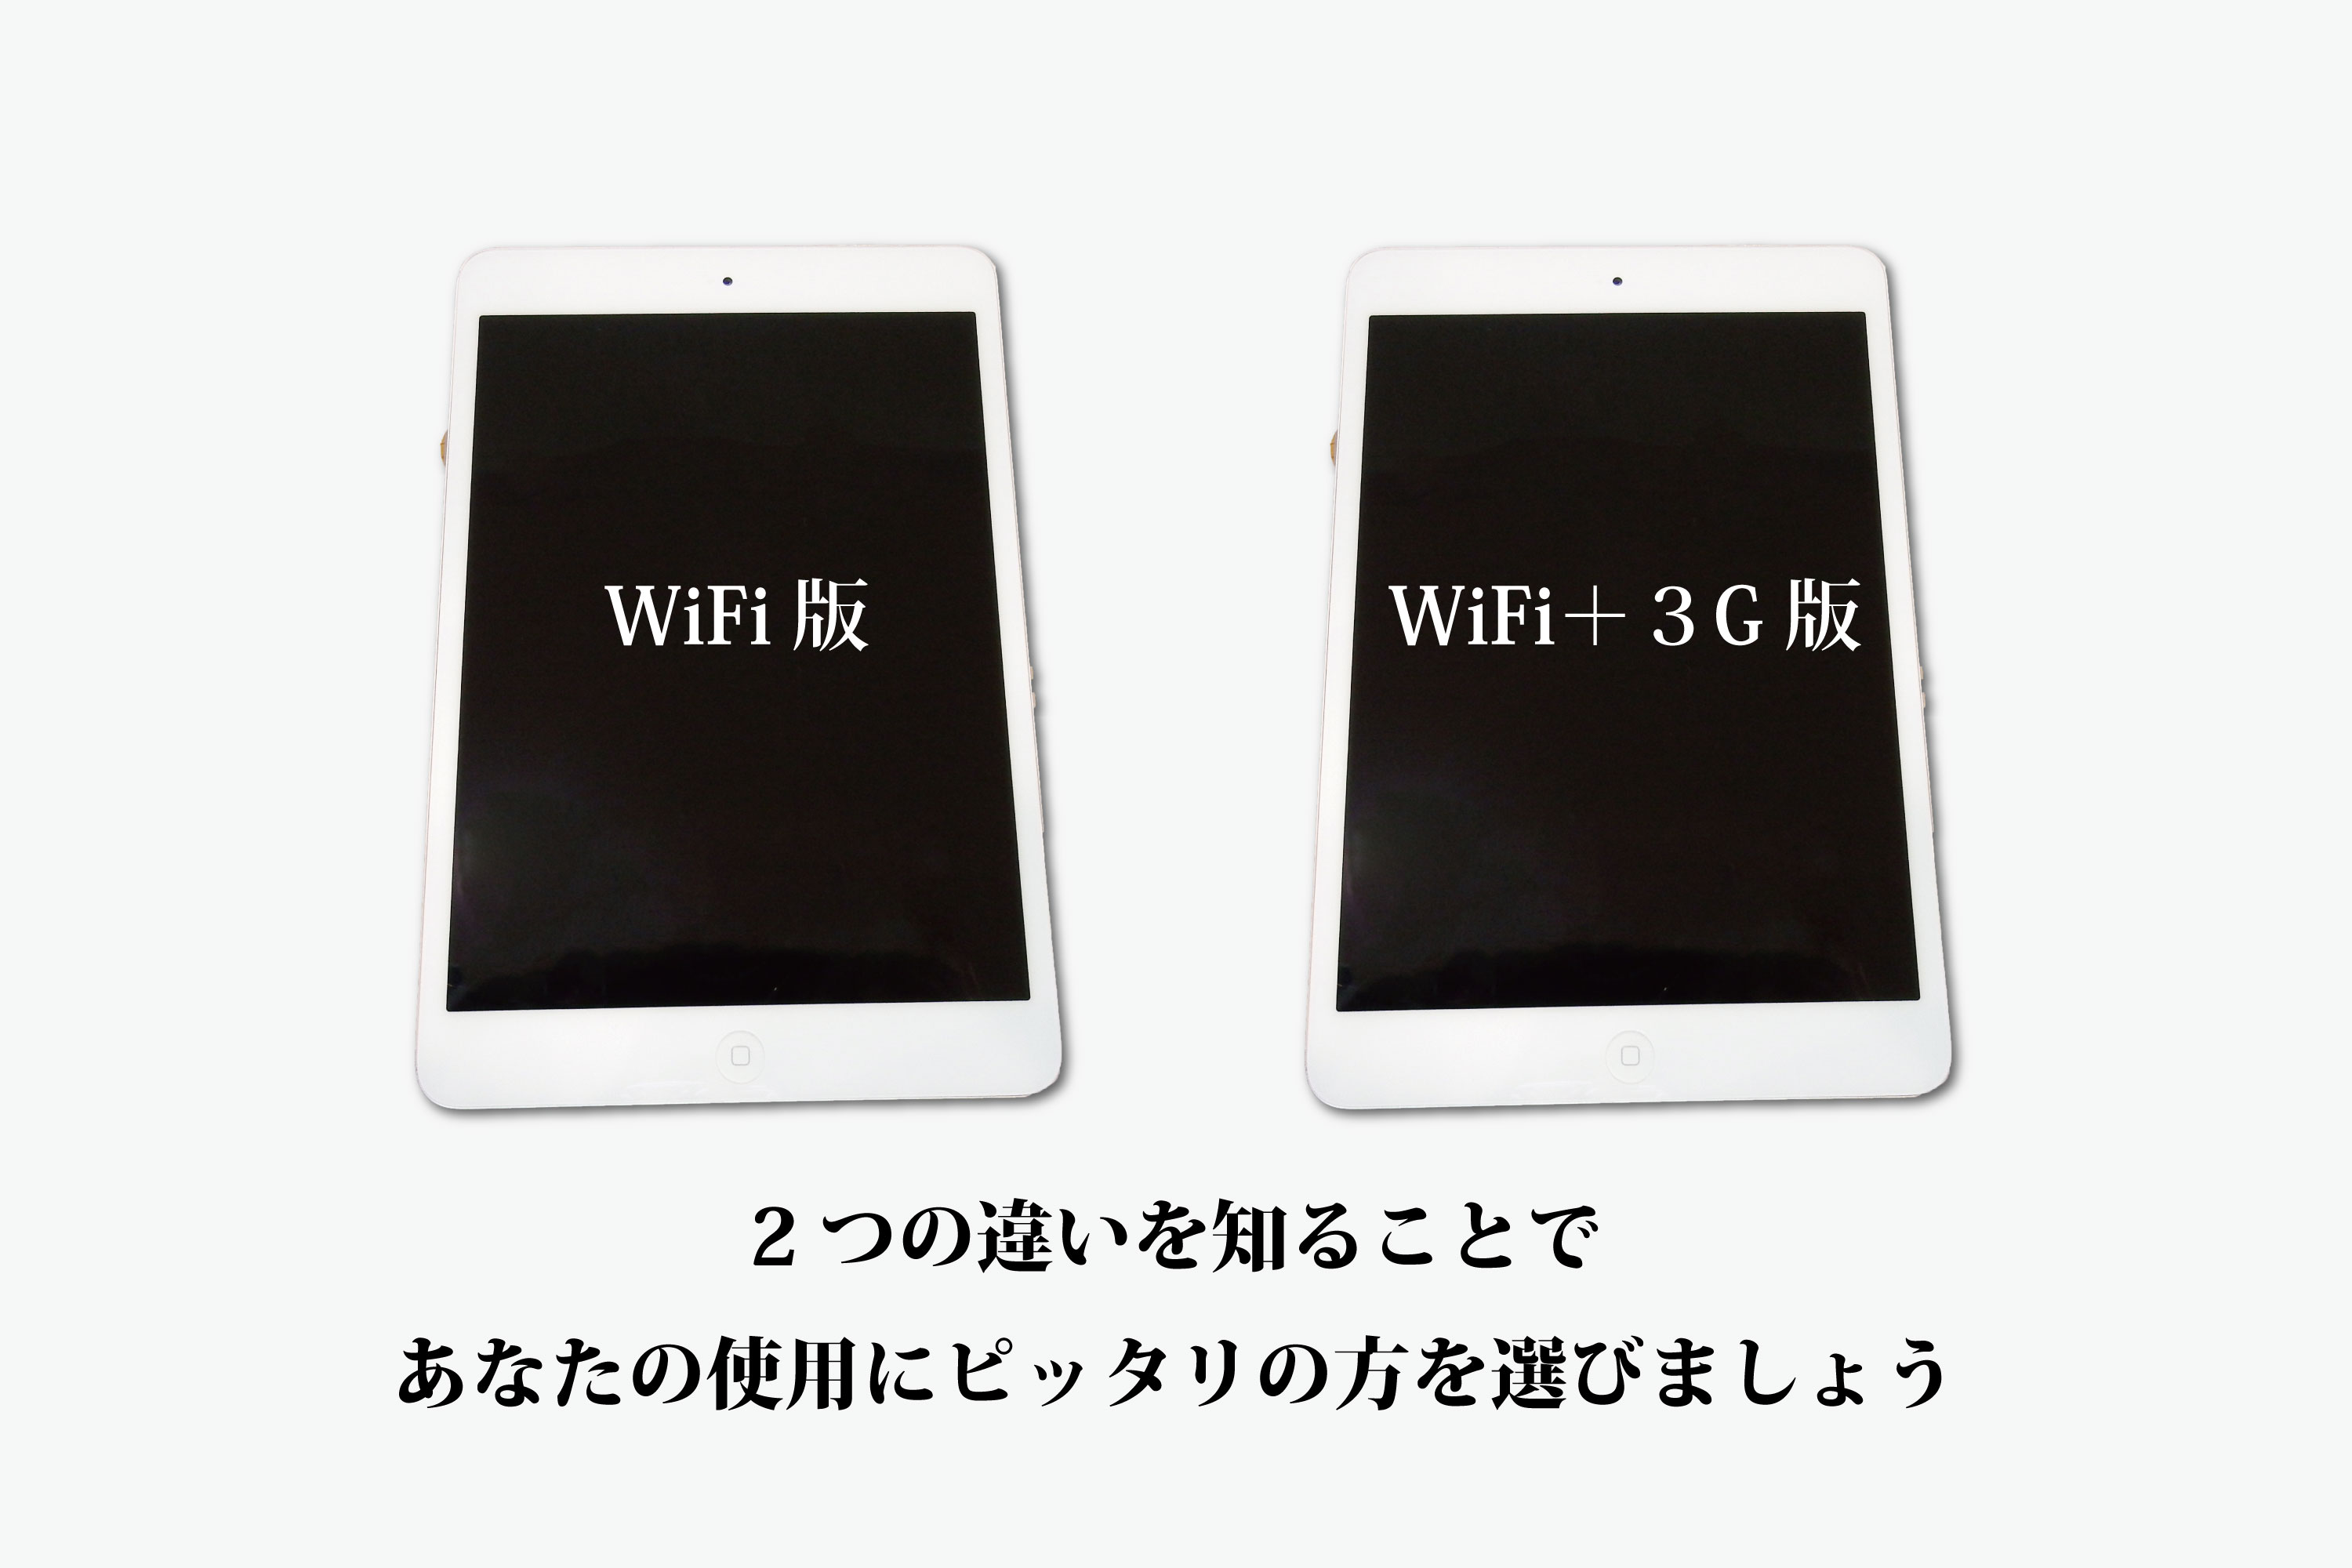 WiFiと3G